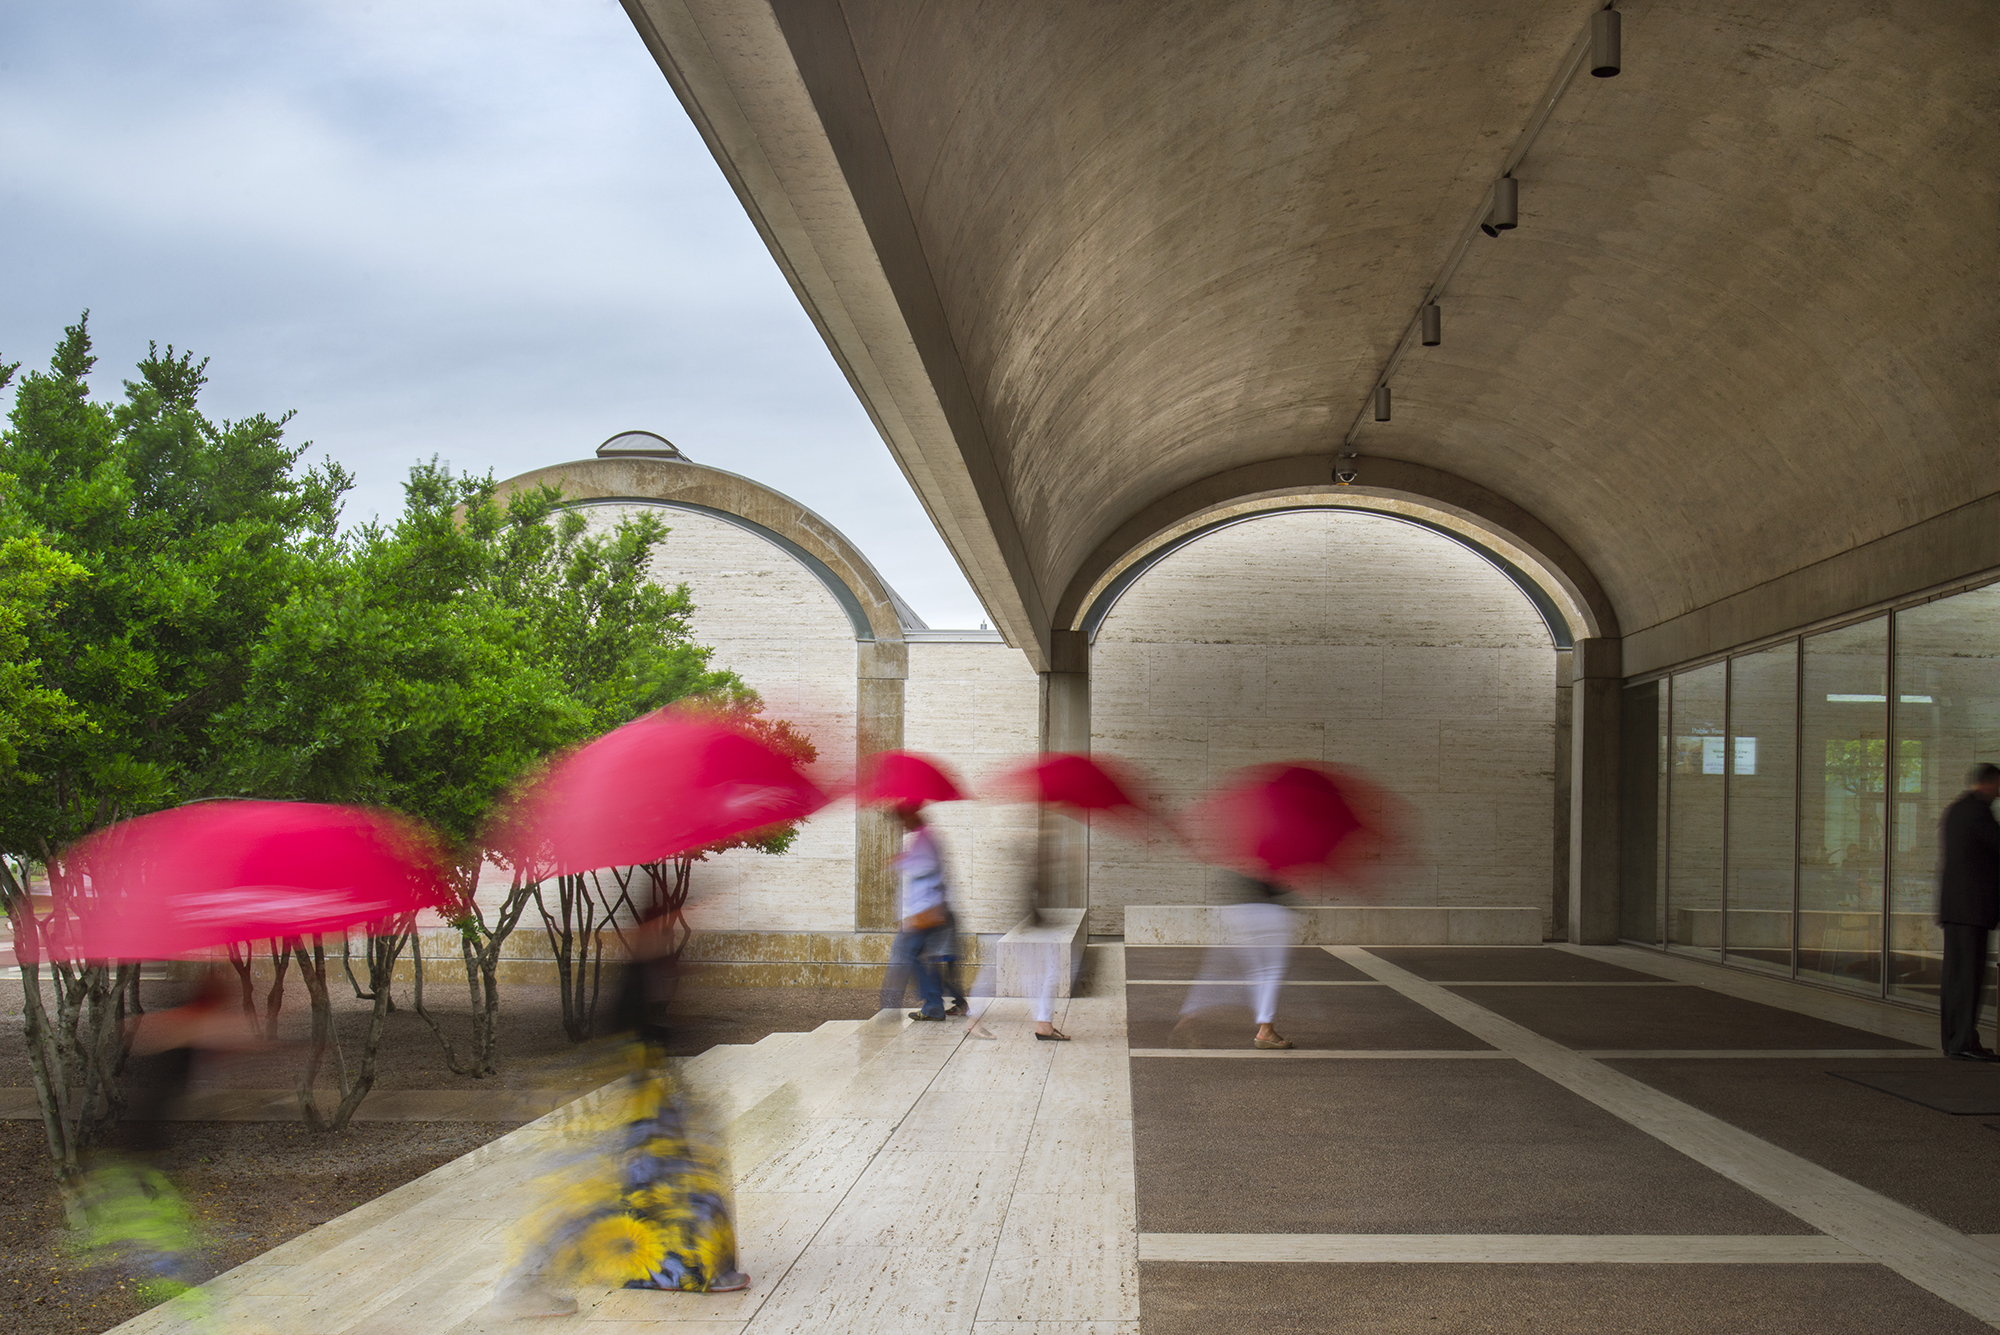 renzo piano building workshop | kimbell museum | fort worth usa